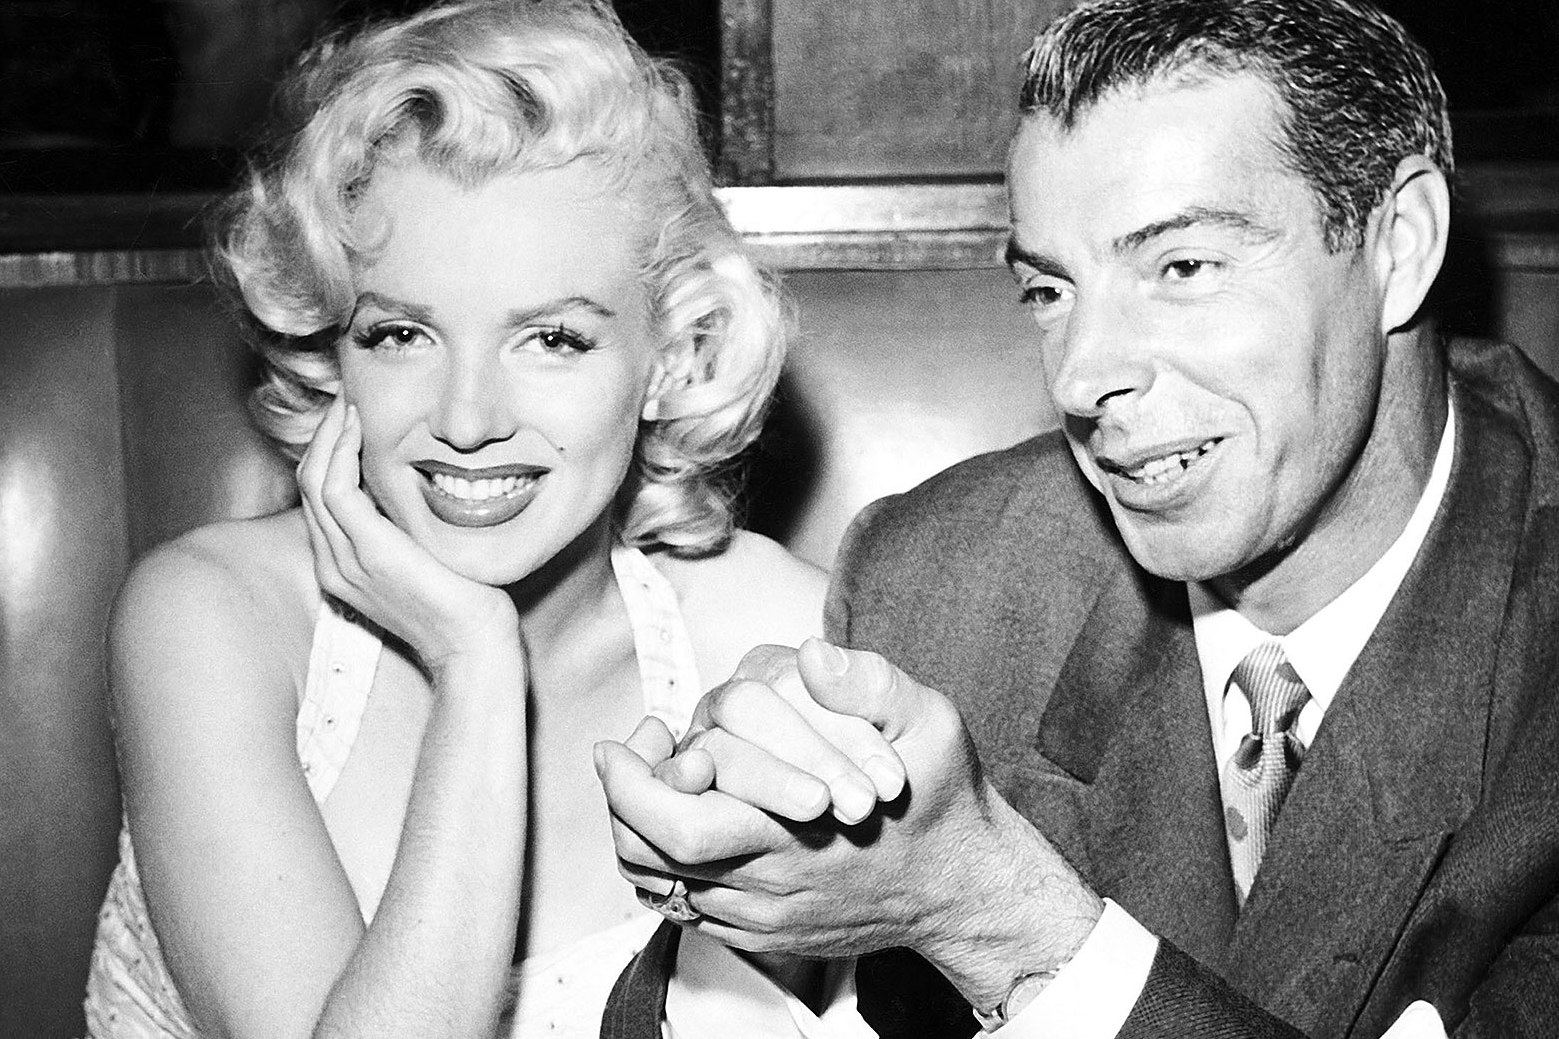 celebrity breakups Marilyn Monroe Joe DiMaggio